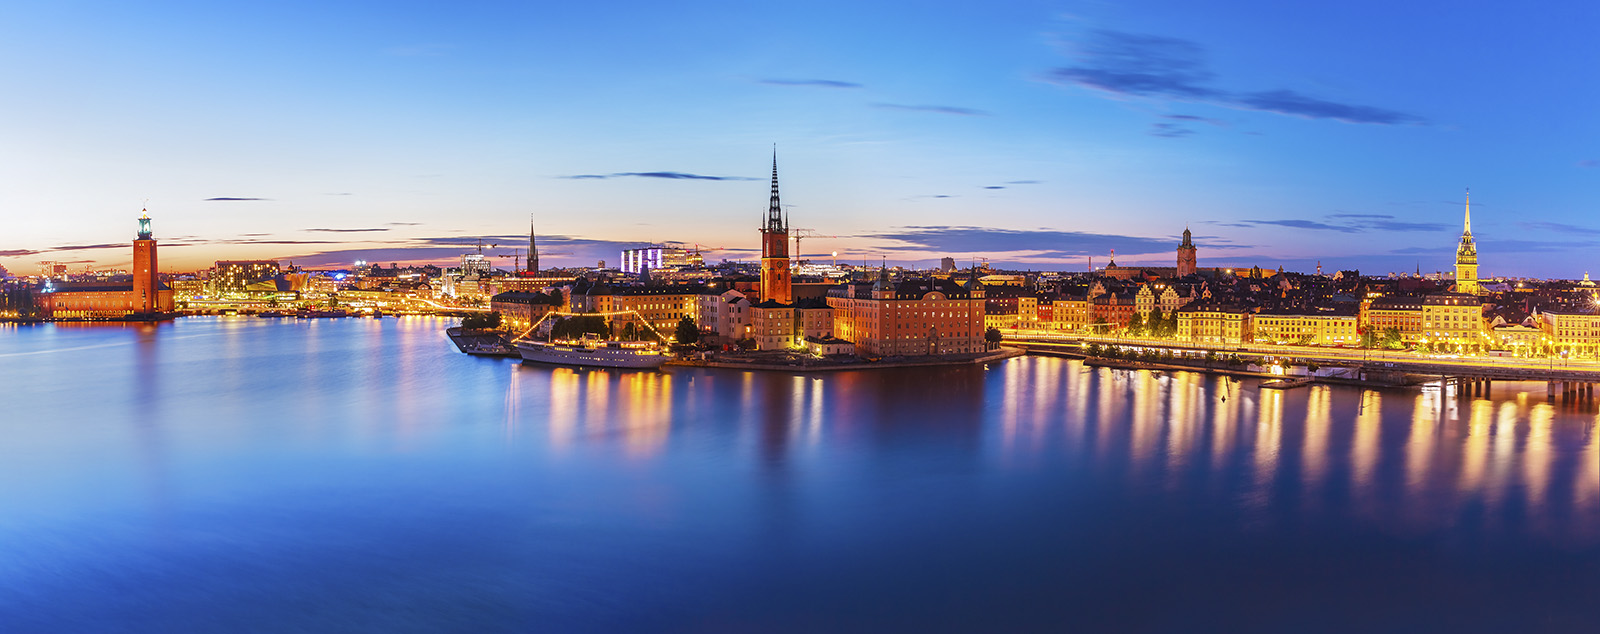 The lights of Stockholm's old town glowing and reflecting off the water in the twilight hours.